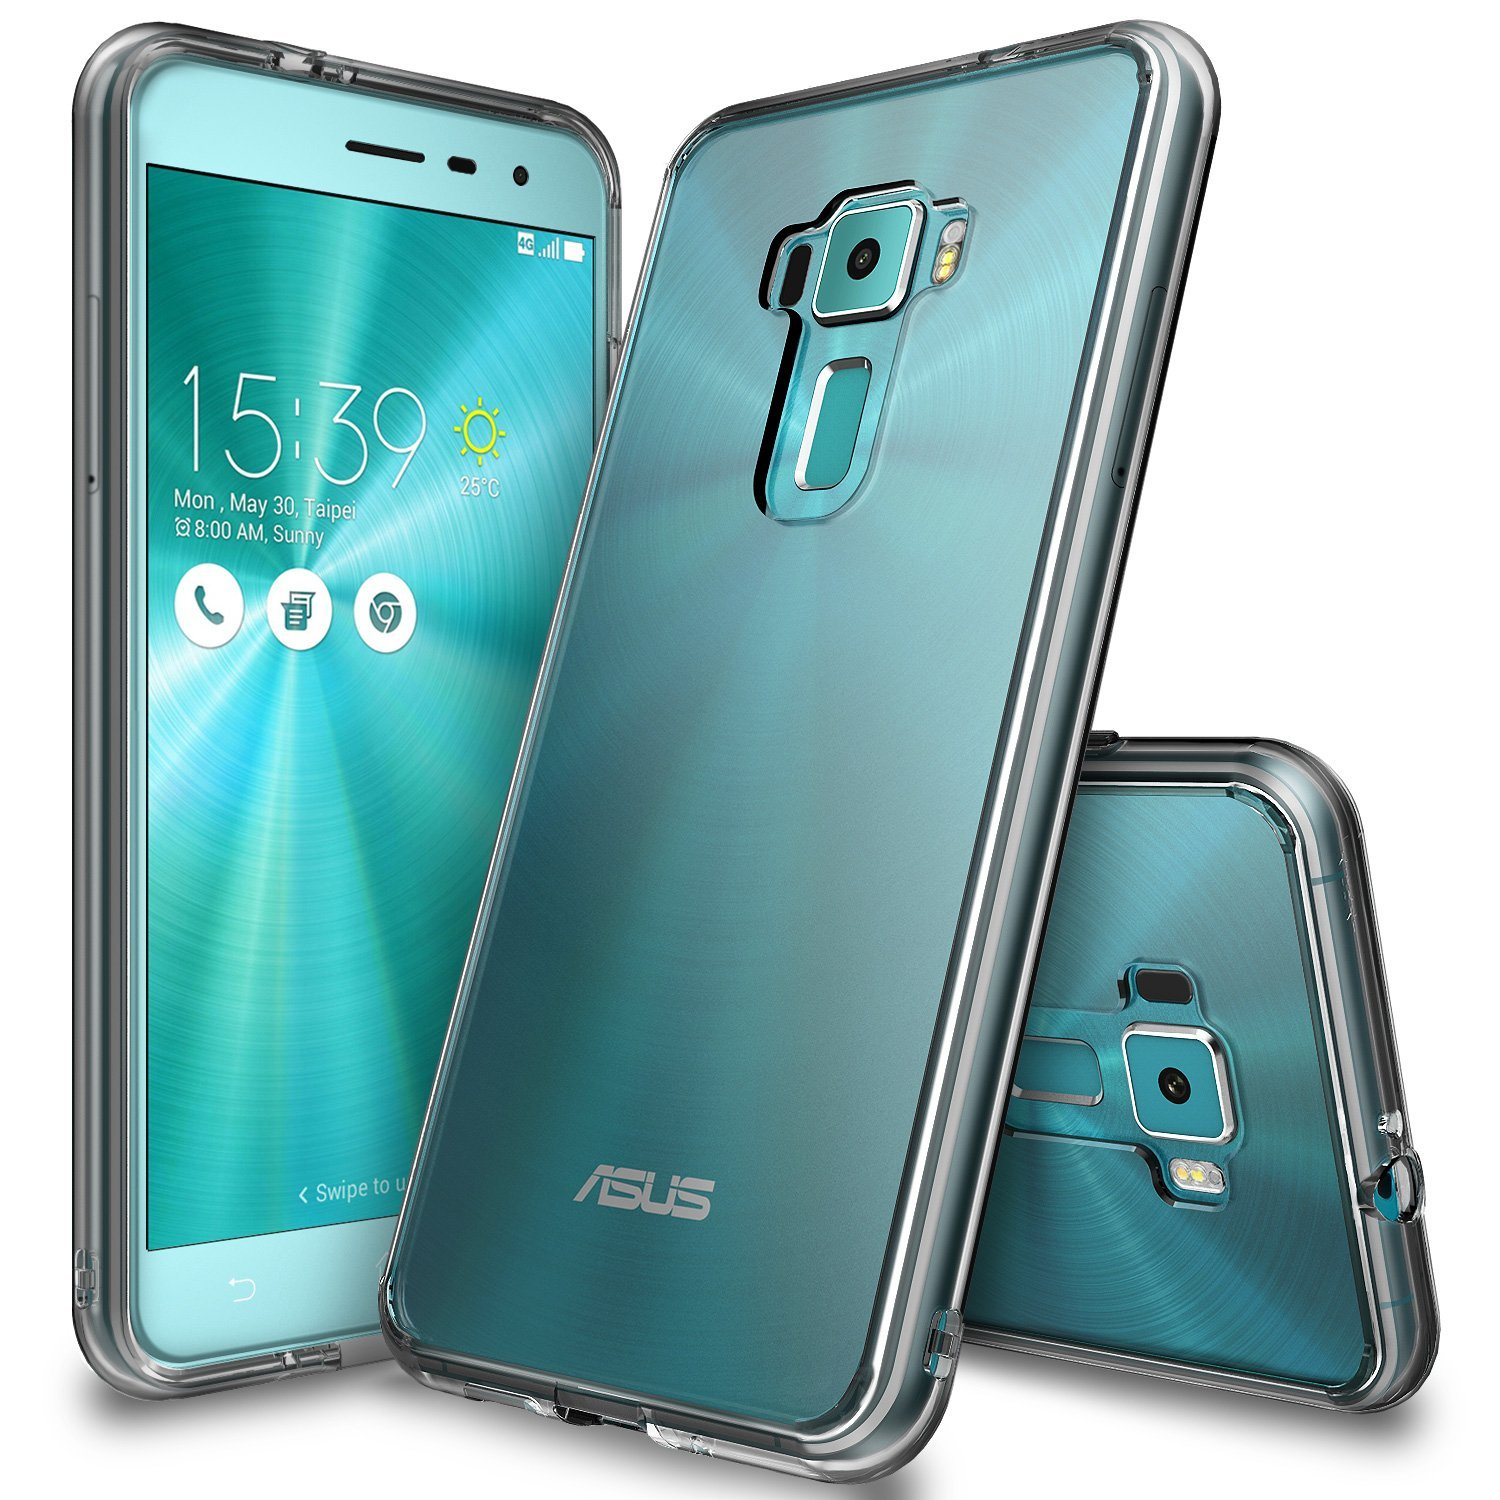 Asus Zenfone 3 Case, Ringke [Smoke] FUSION Clear PC Back TPU Bumper [Drop Protection/Shock Absorption Technology] Raised Bezels Protective Cover